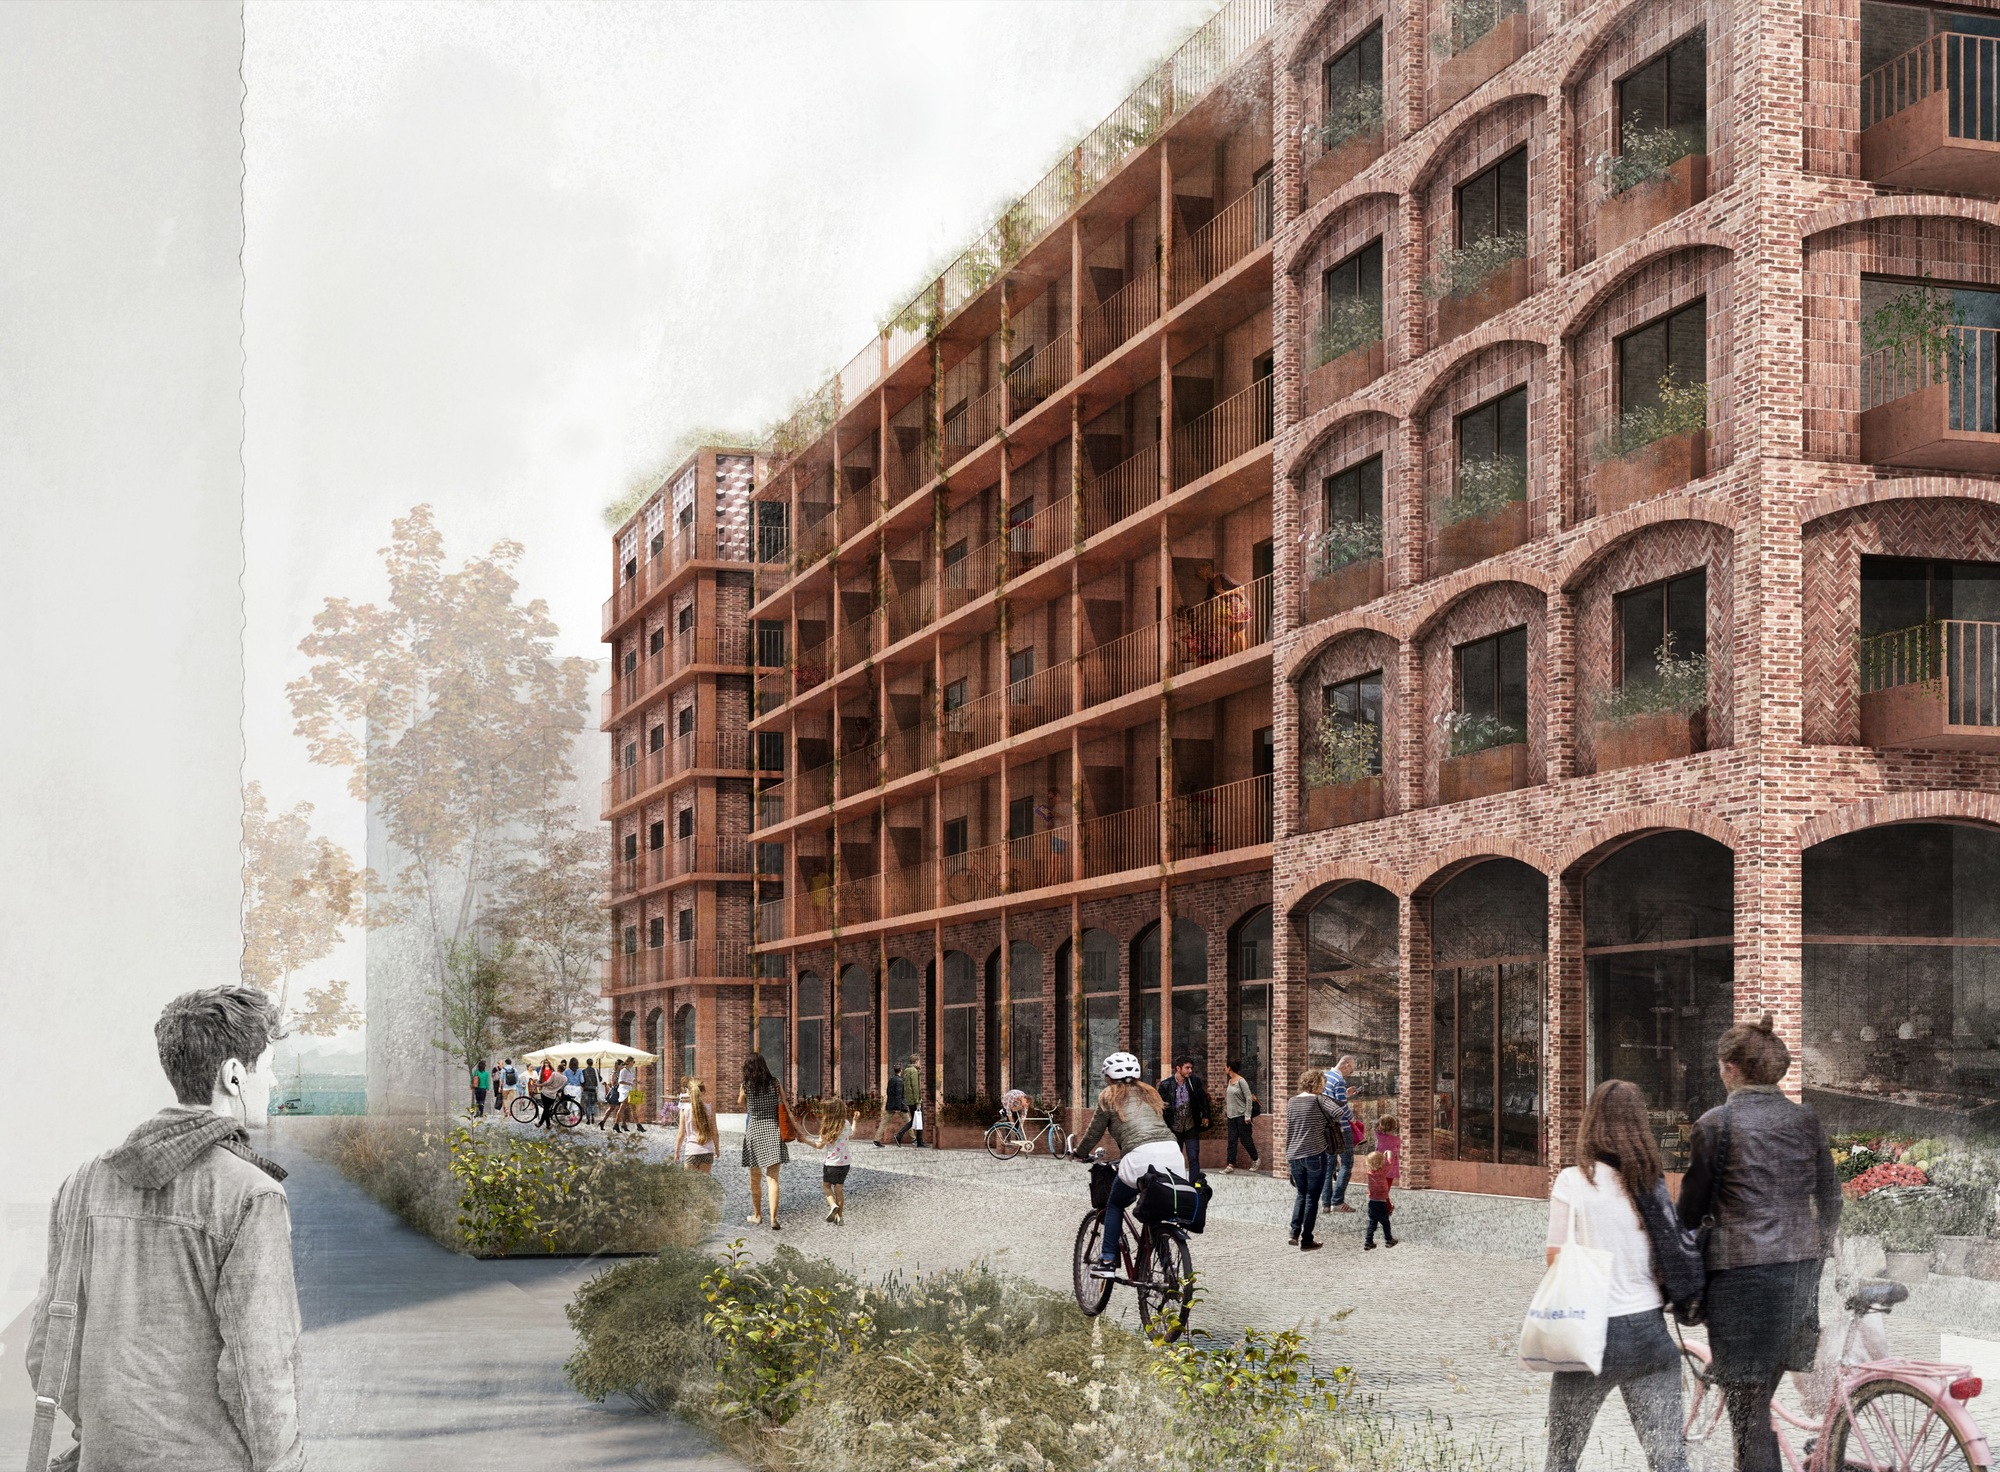 White Arkitekter Wins Competition with Brick Housing Development in Stockholm Royal Seaport